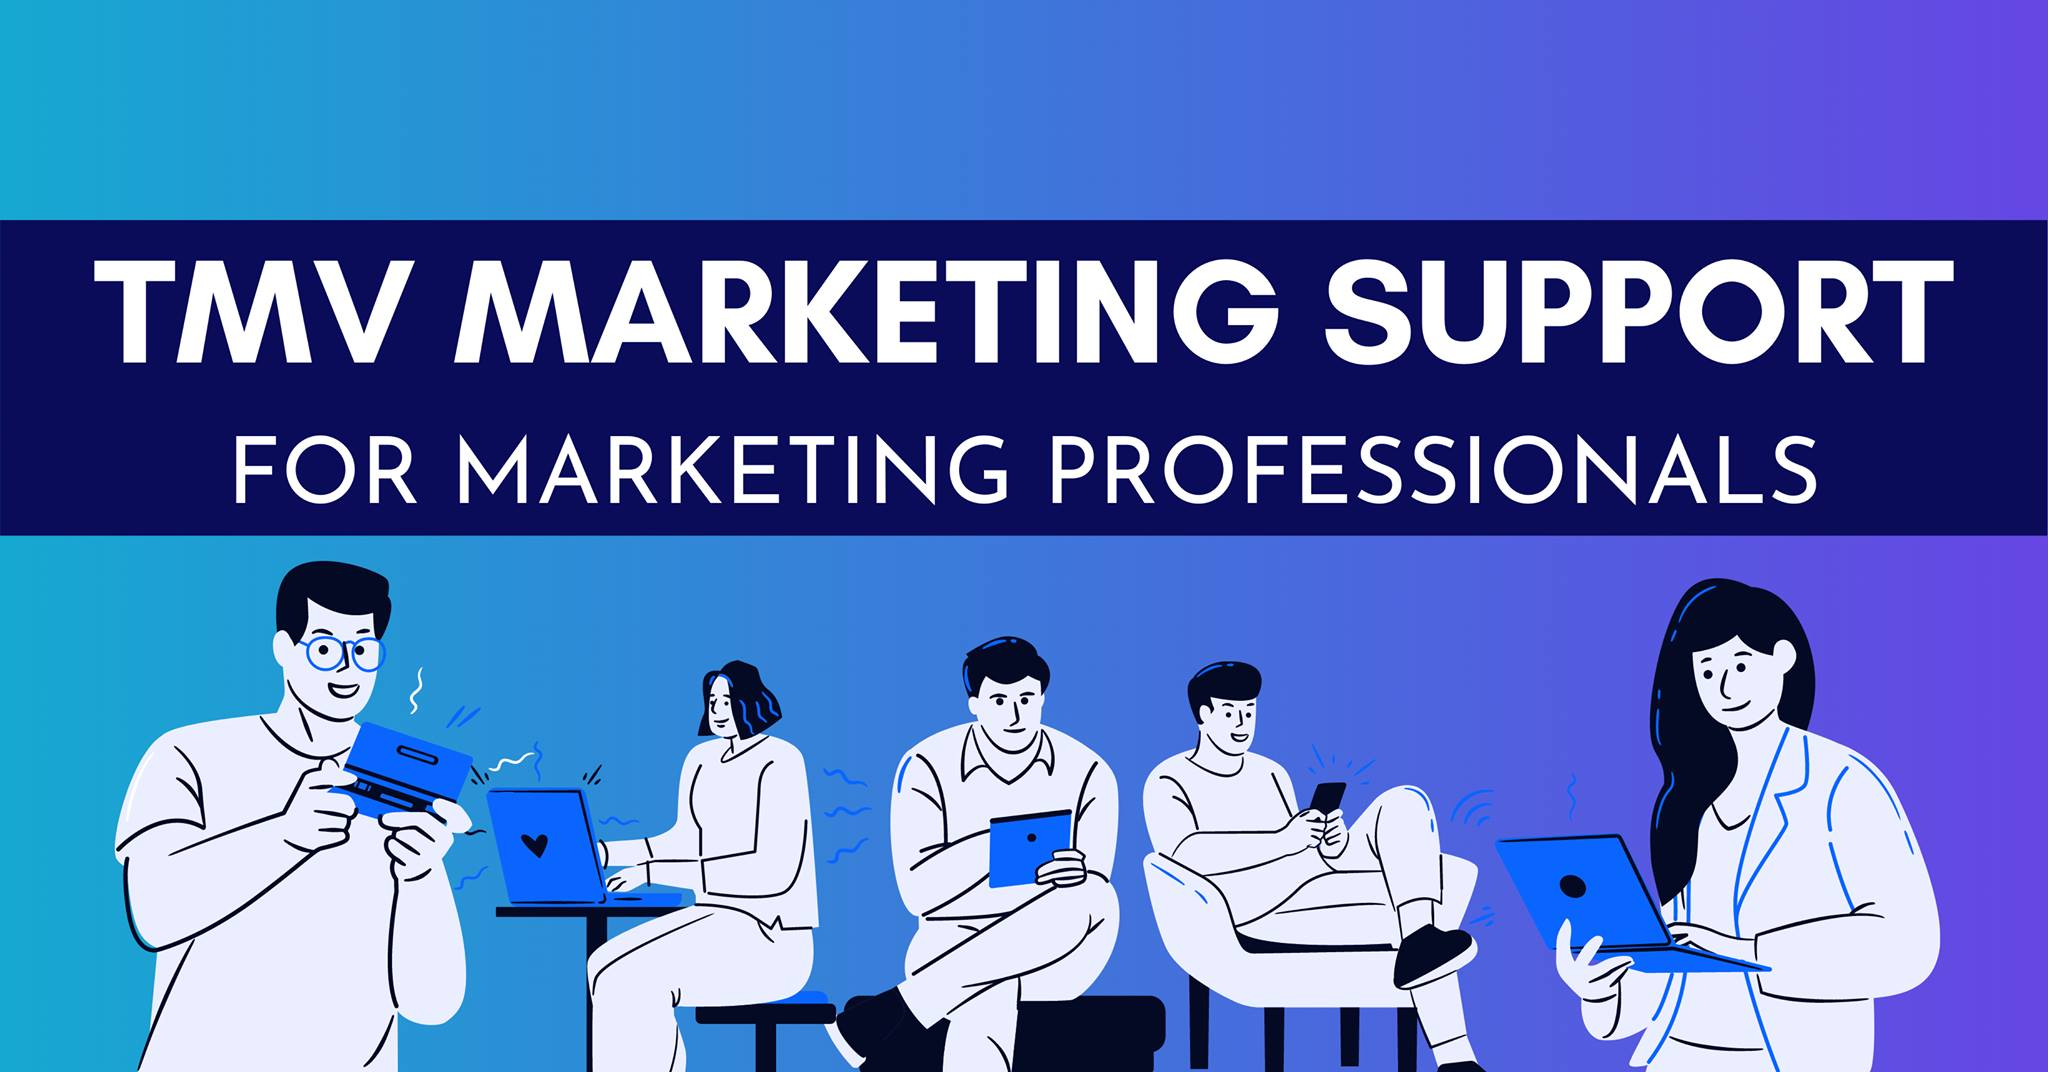 TMV Marketing Support 1